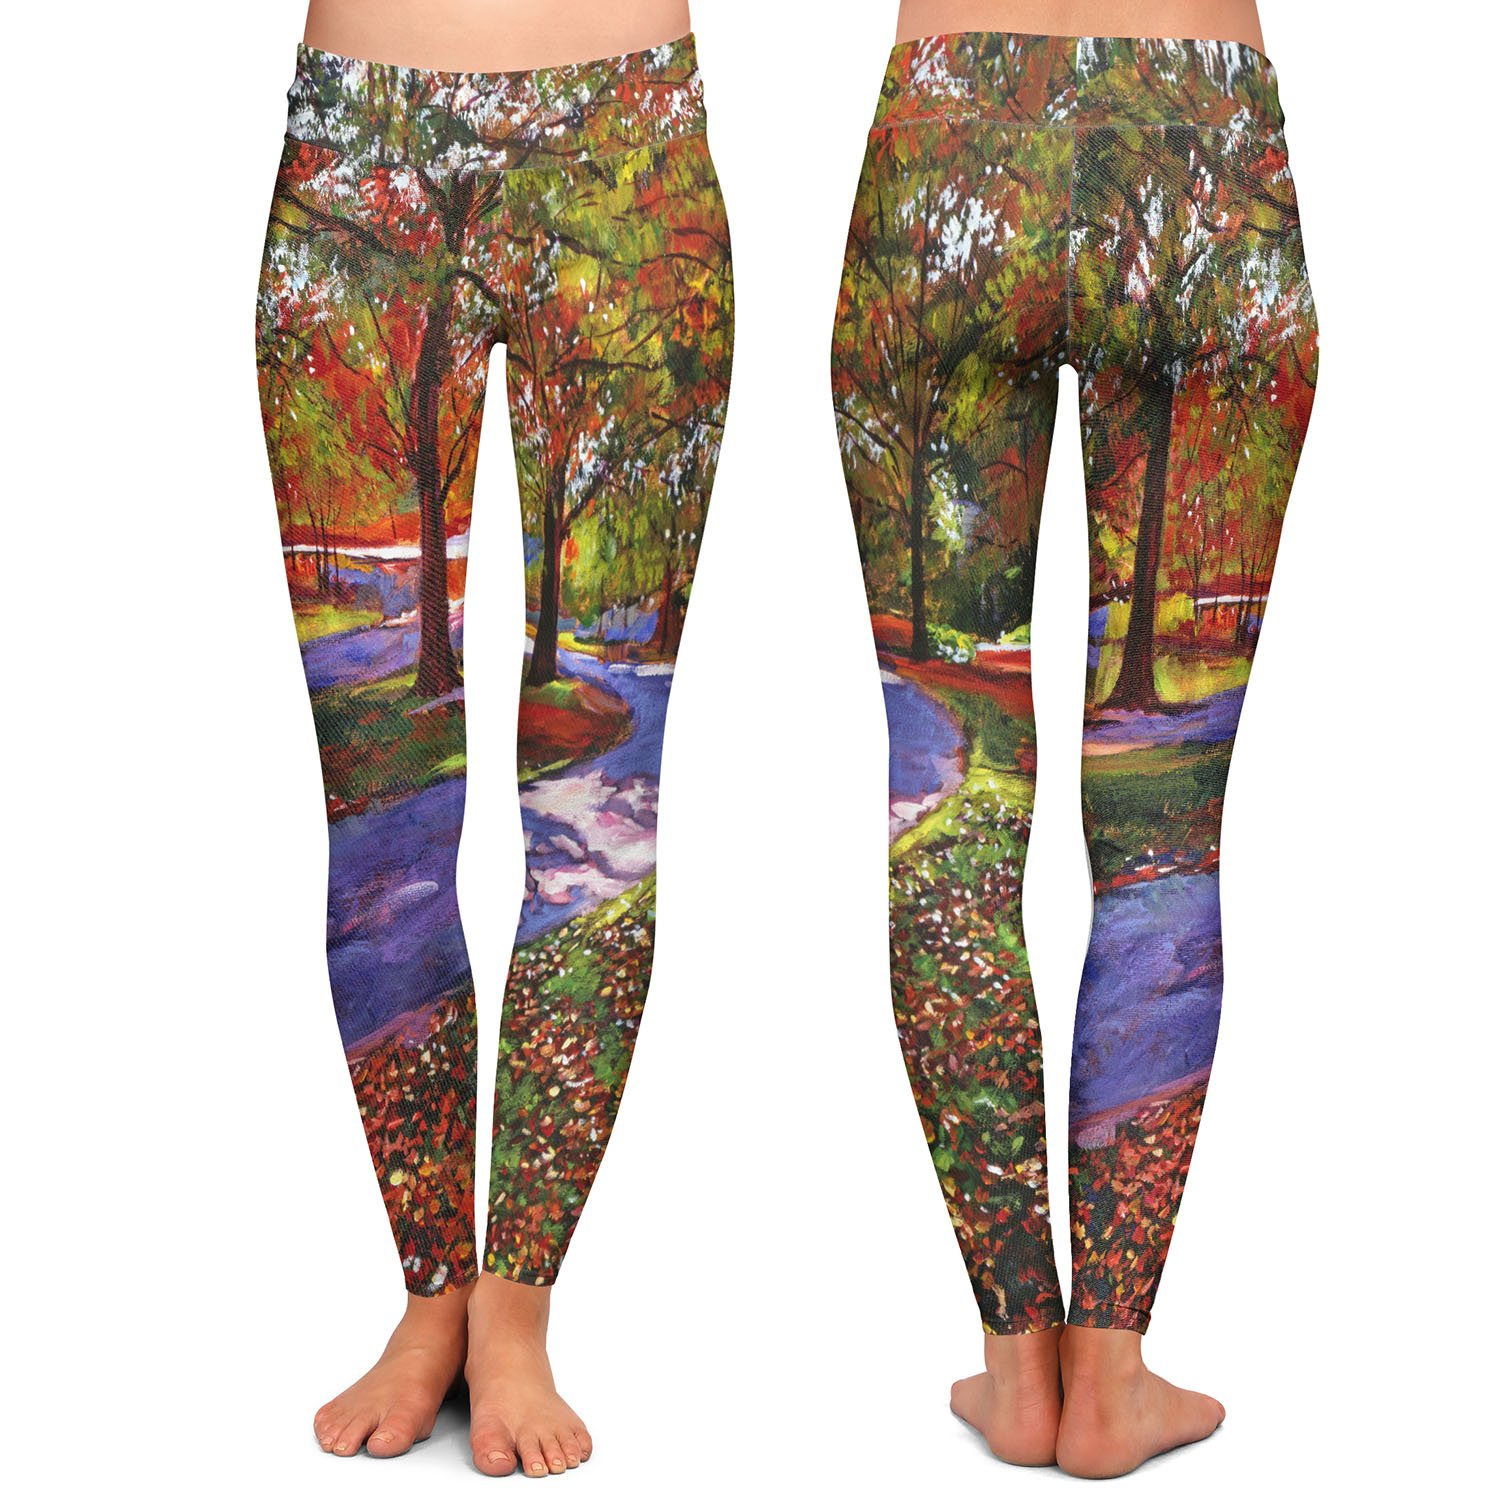 Athletic Yoga Leggings from DiaNoche Designs by David Lloyd Glover Road by Lake